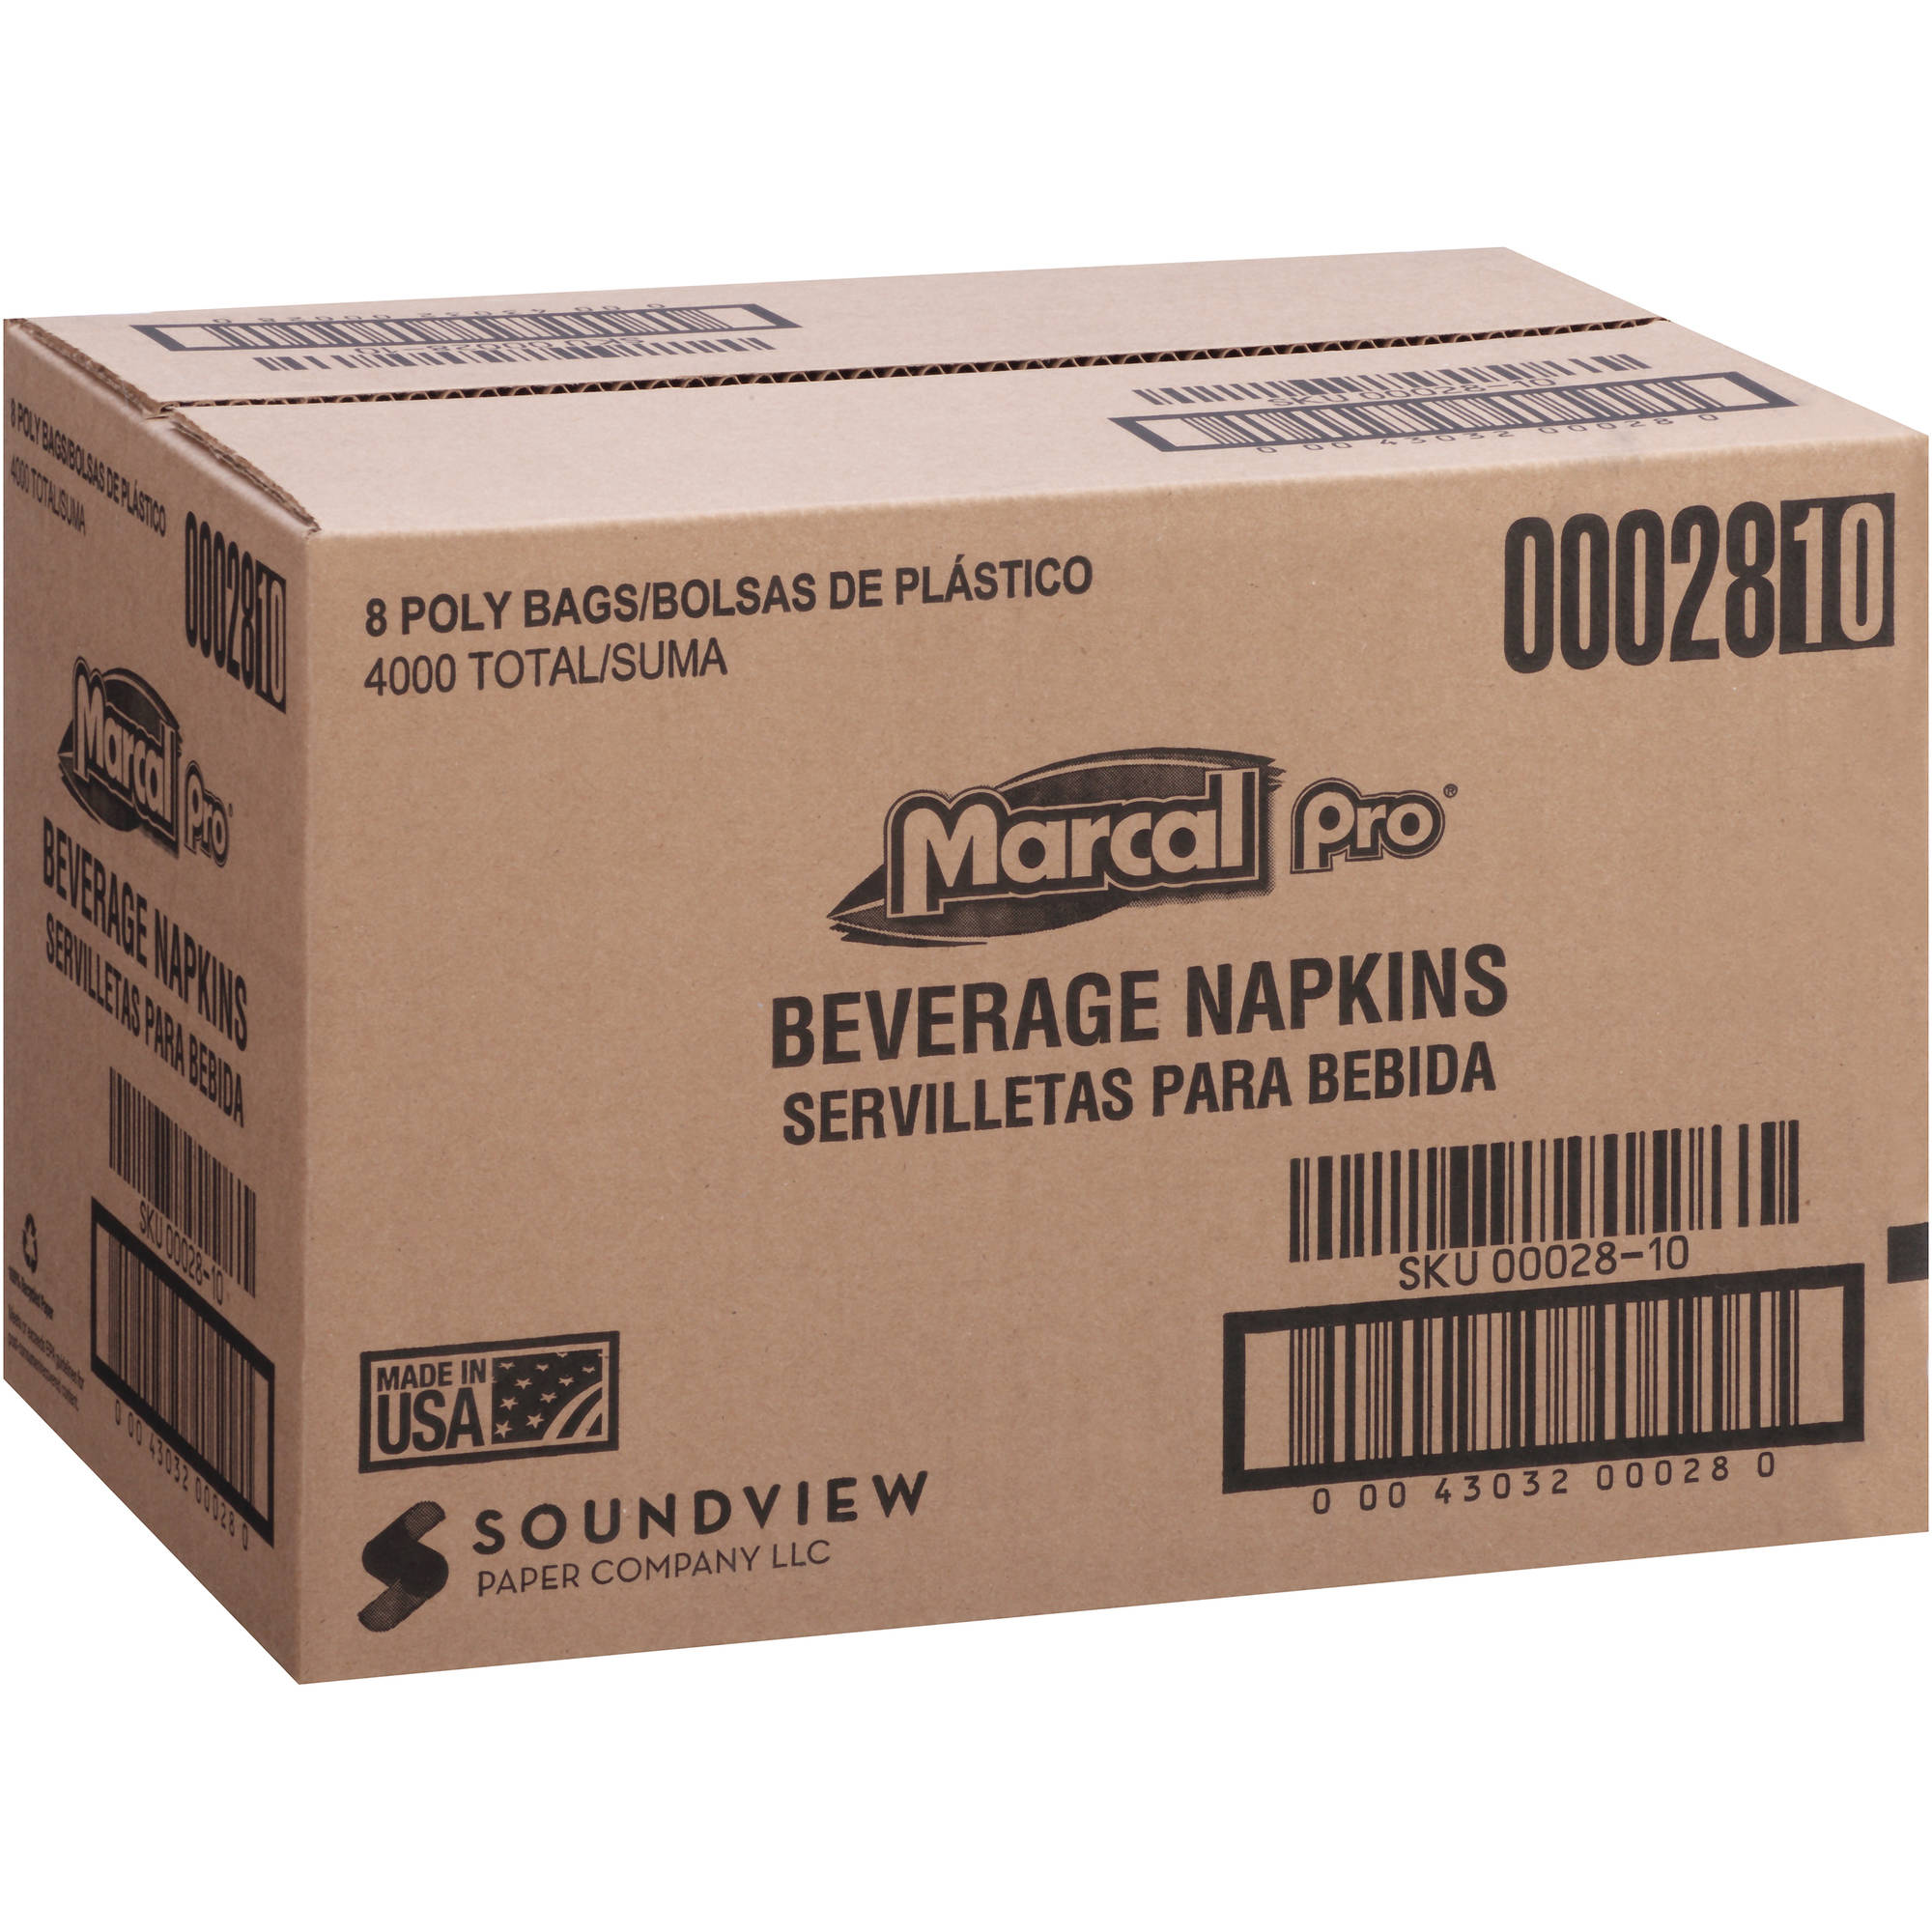 Marcal Pro Beverage Napkins, 500 count, (Pack of 8)